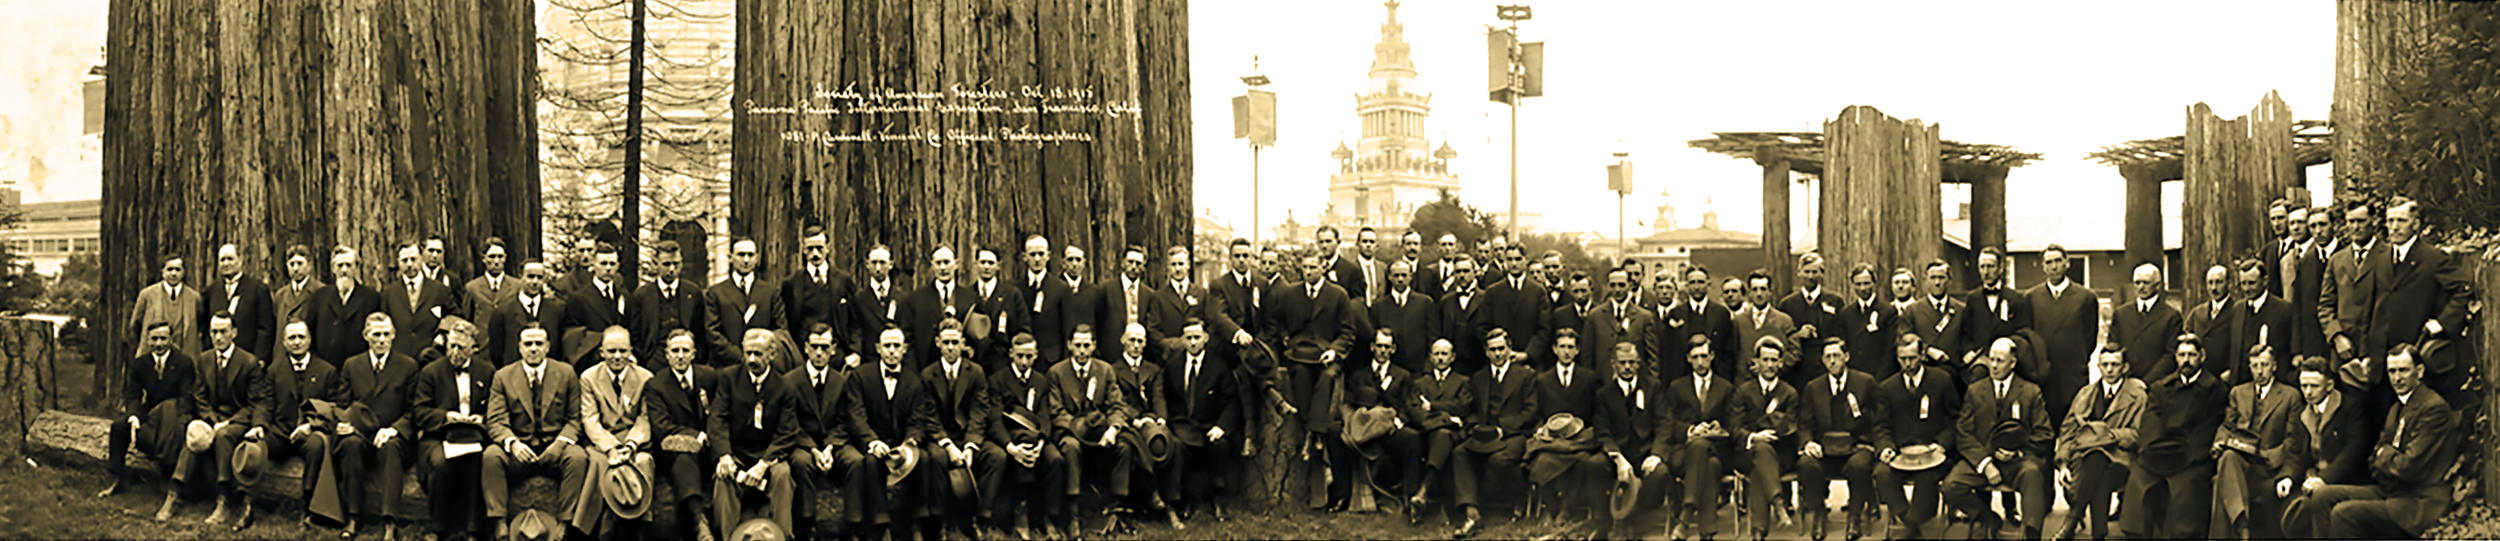 Annual meeting of The Society of American Foresters, Oct 18, 1915. Panama Pacific International Exposition, San Francisco. By P. Cardinell-Vincent Co. Official Photographers. Courtesy of Library of Congress Manuscript Division, Gifford Pinchot Collection.